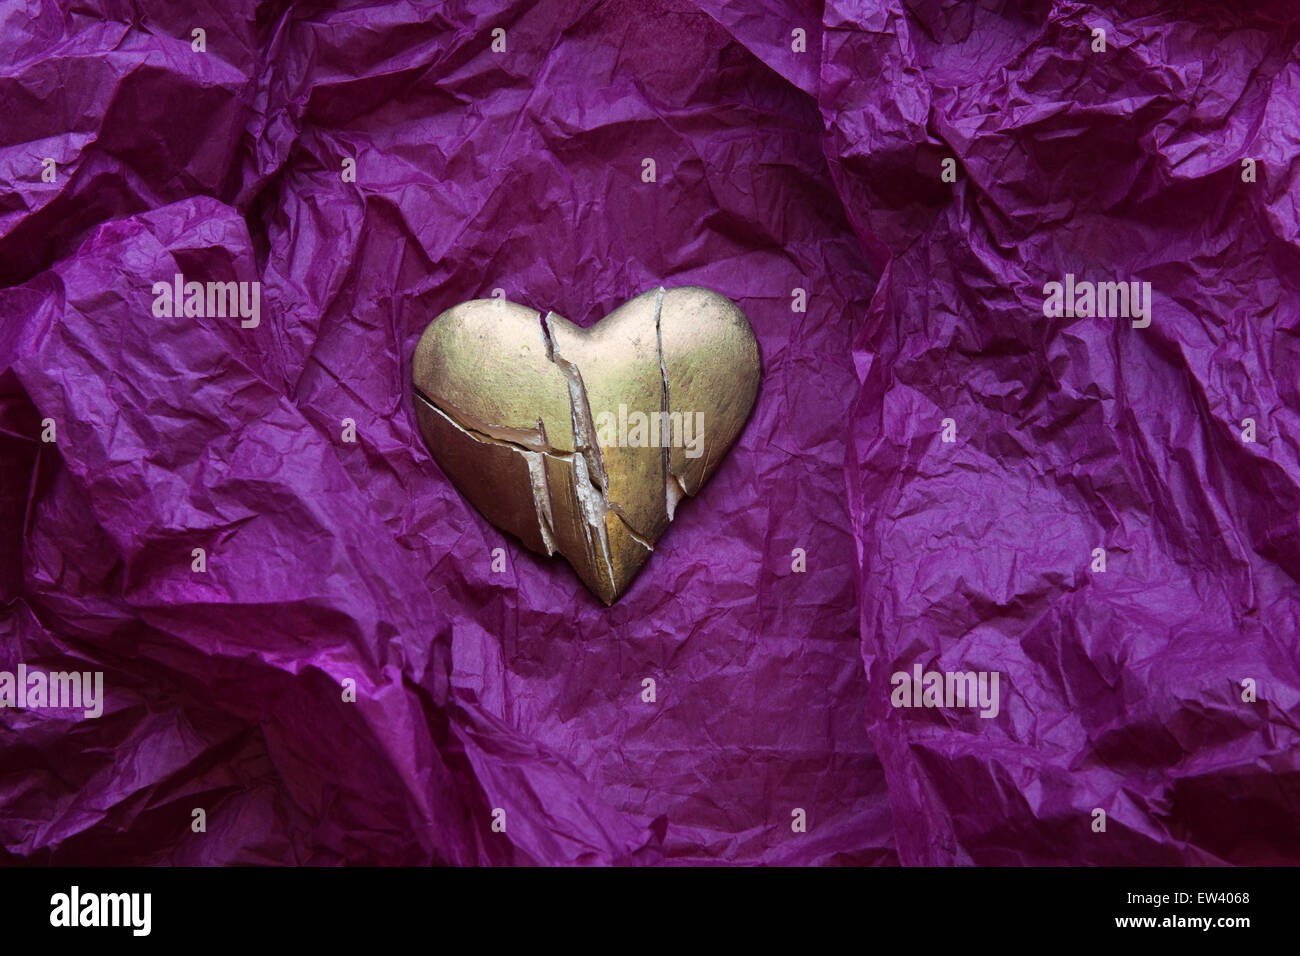 Shattered, gold painted heart on crumpled purple tissue paper. - Stock Image